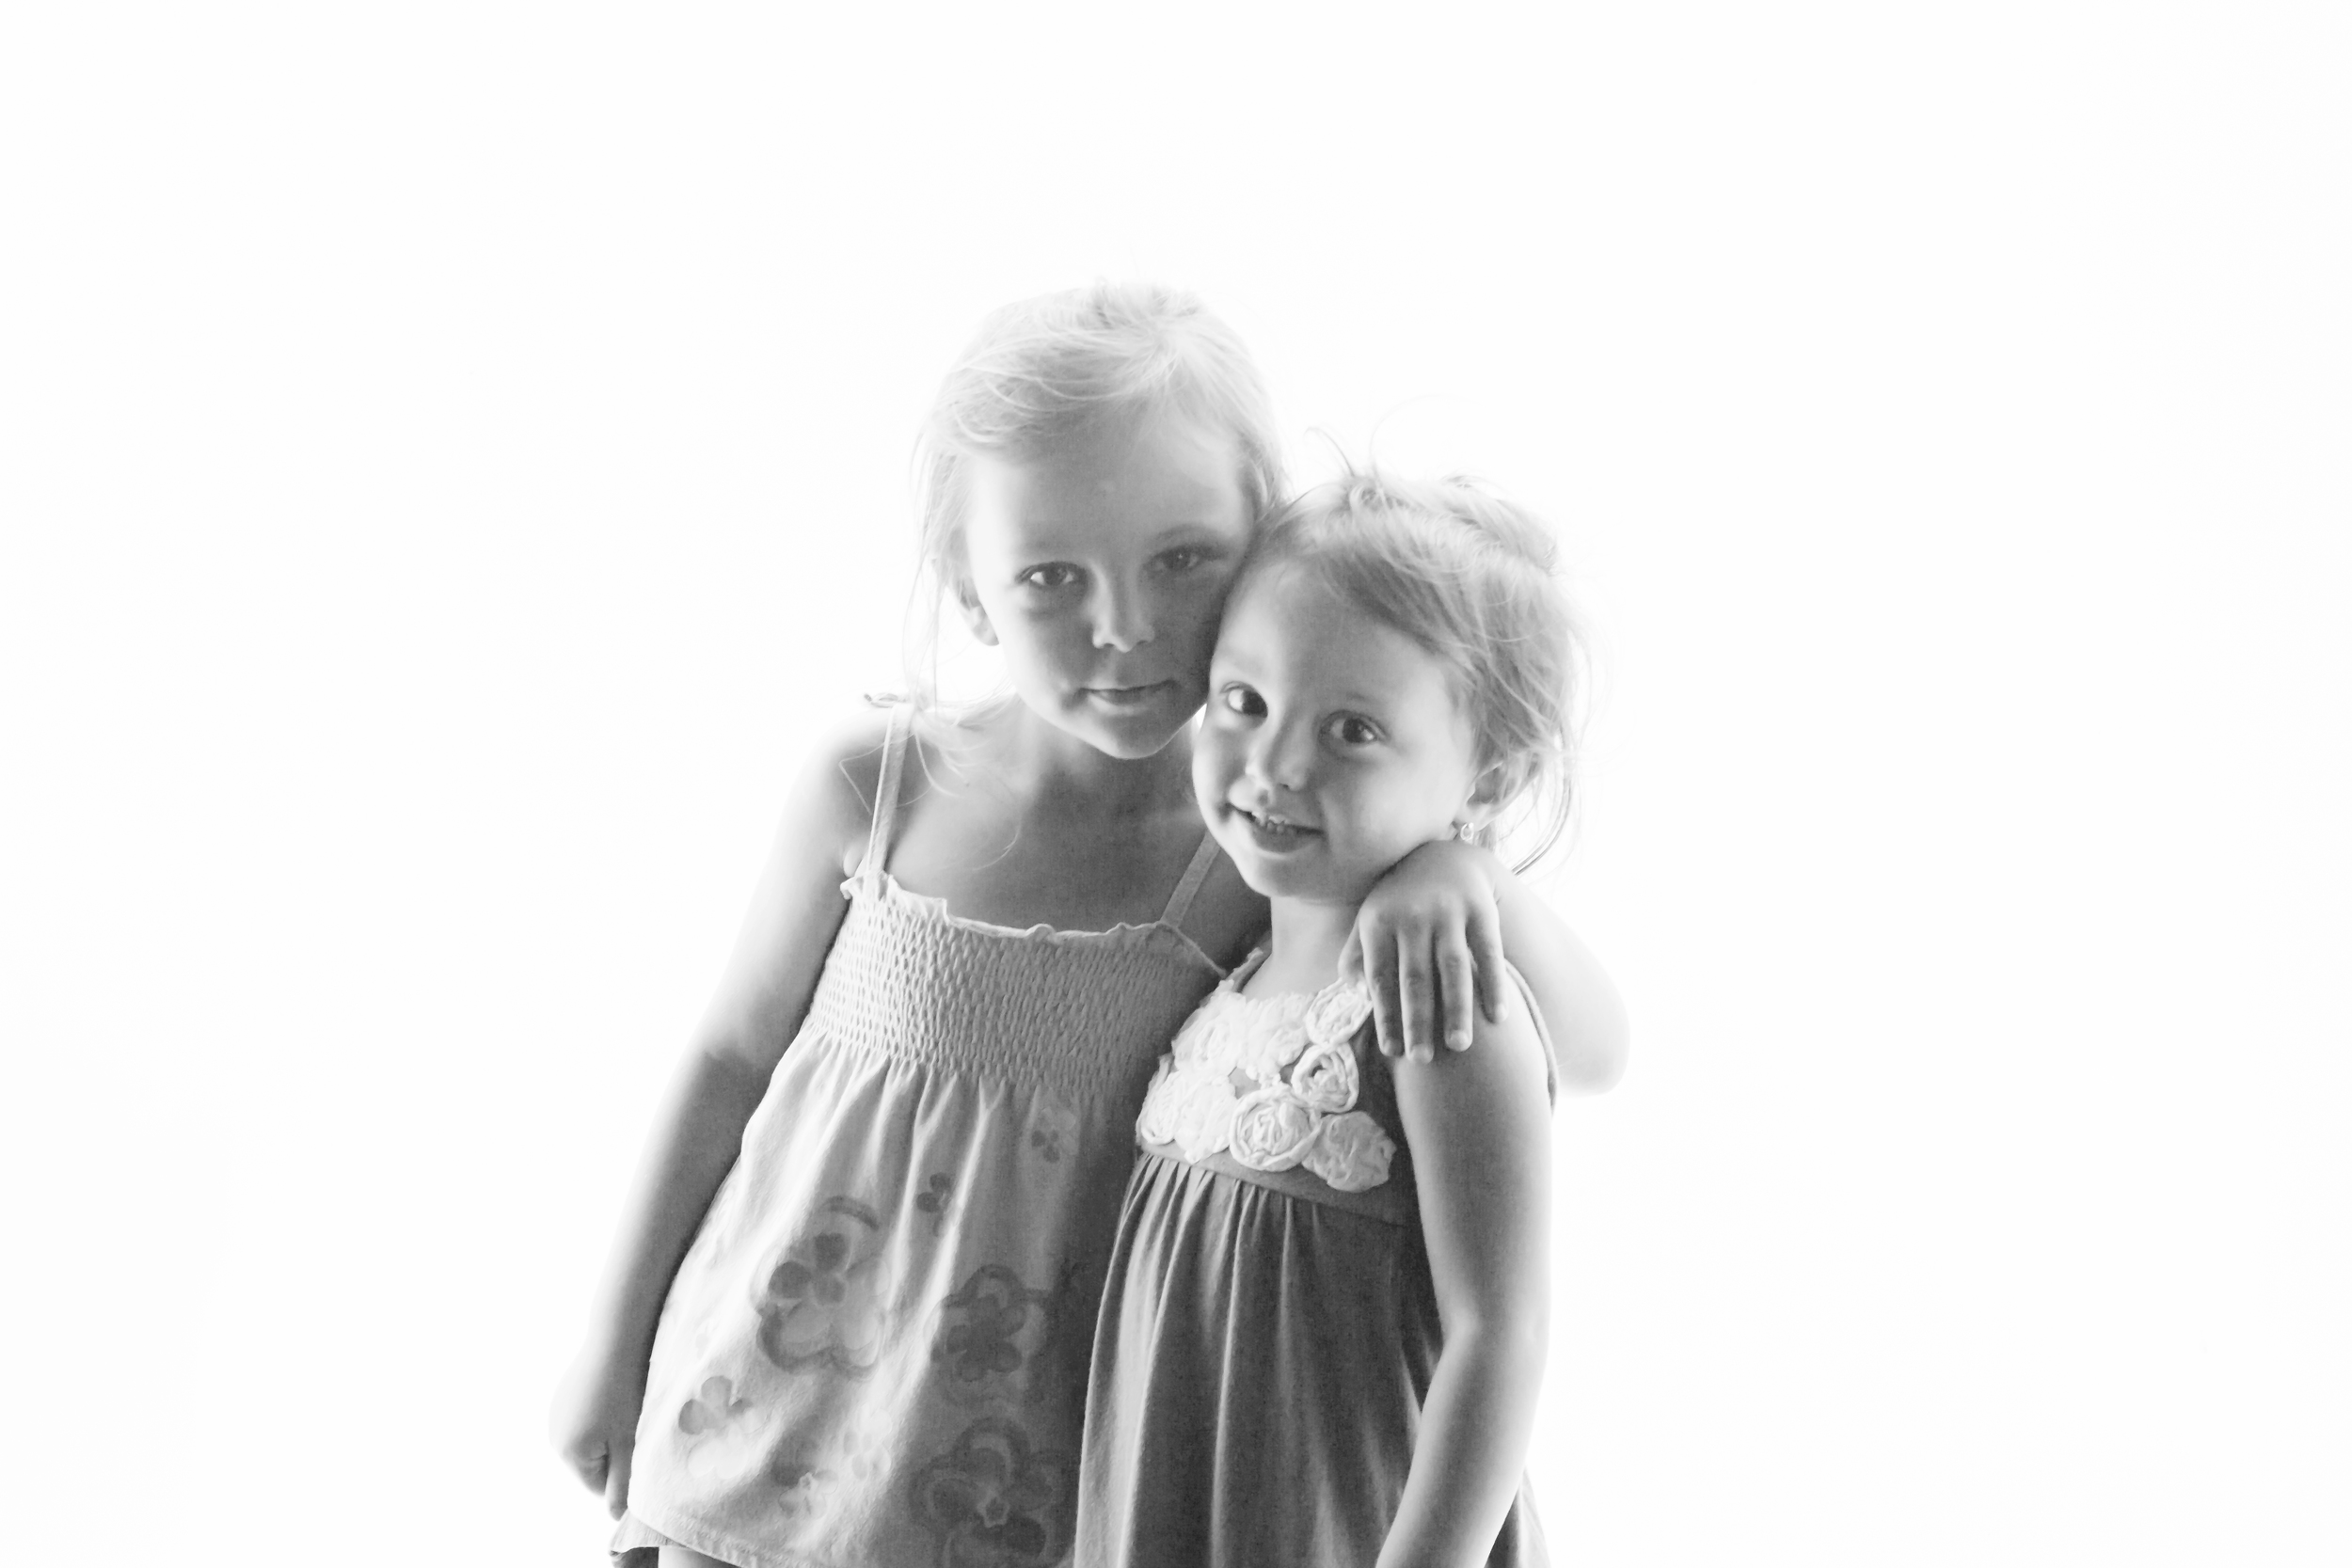 Our oldest, William, took this photograph of the two youngest, Lily and Sadie.  The color was very blue due to the lights in the Texas State Aquarium, but he changed it to black and white.  Don't be afraid to experiment and get creative!